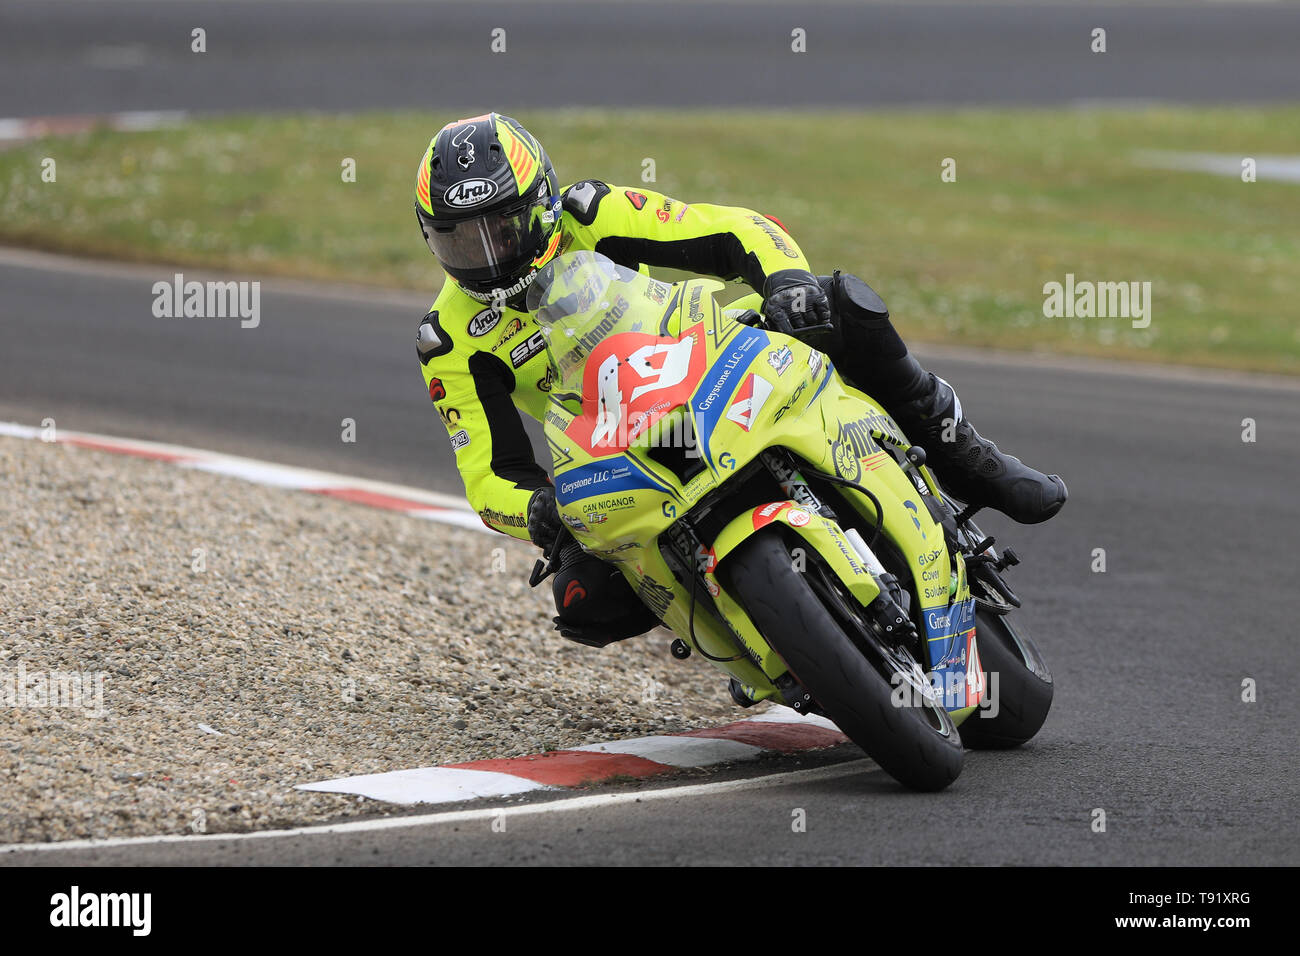 Portrush, Northern Ireland. 16th May, 2019. International North West 200 Motorcycle road racing, Thursday practice and evening racing; Spain's Raul Torras Martinez on the Raul Torras Kawasaki during the SuperSport qualifying session Credit: Action Plus Sports/Alamy Live News - Stock Image